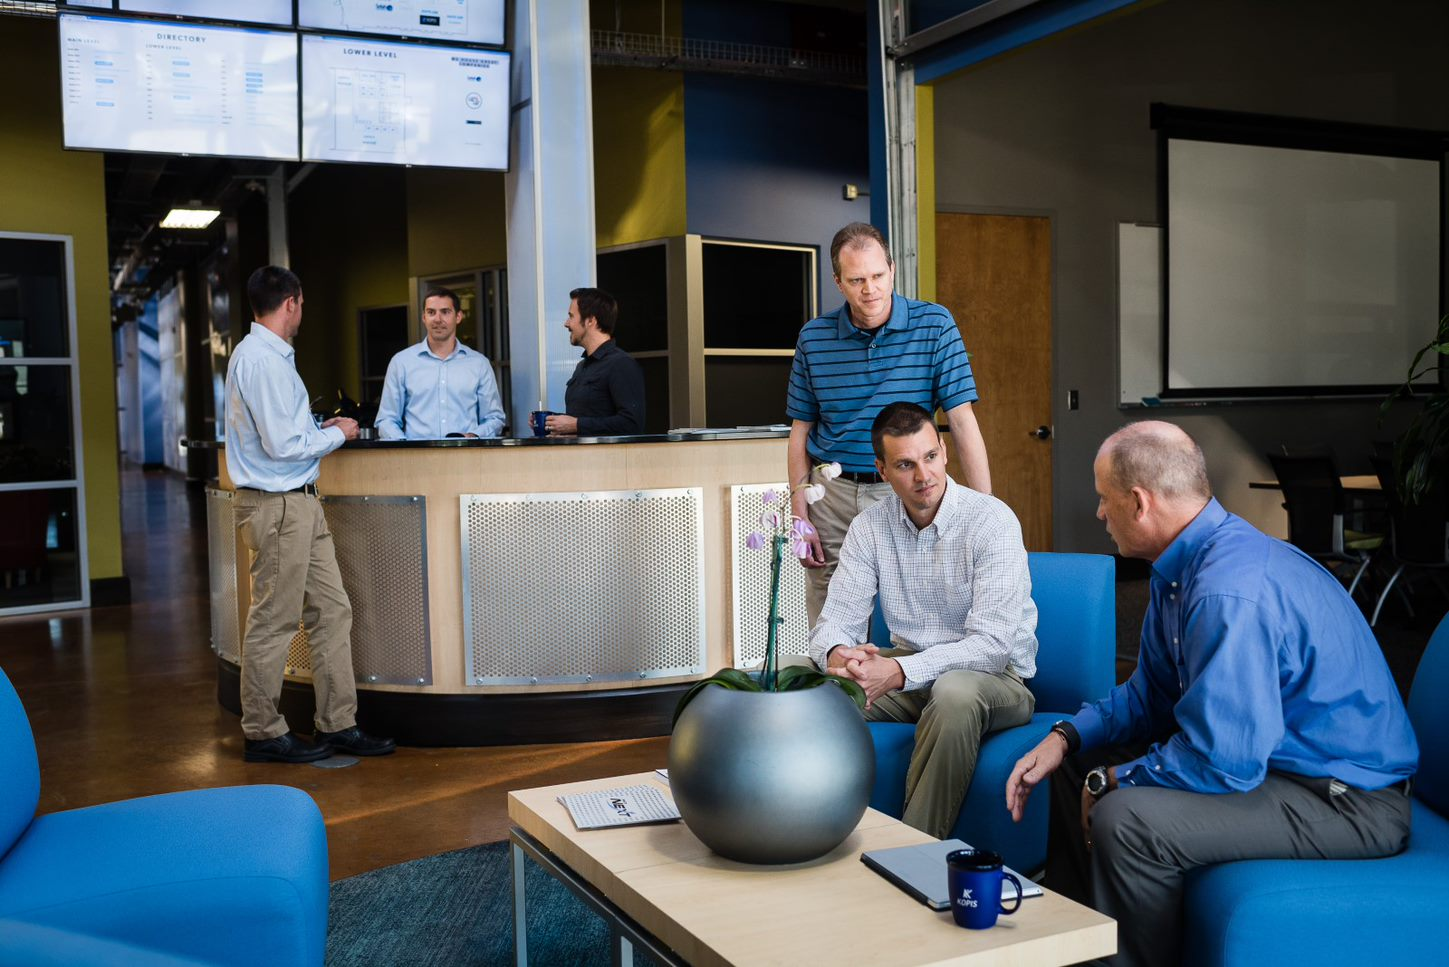 Group of guys talking in lobby of office